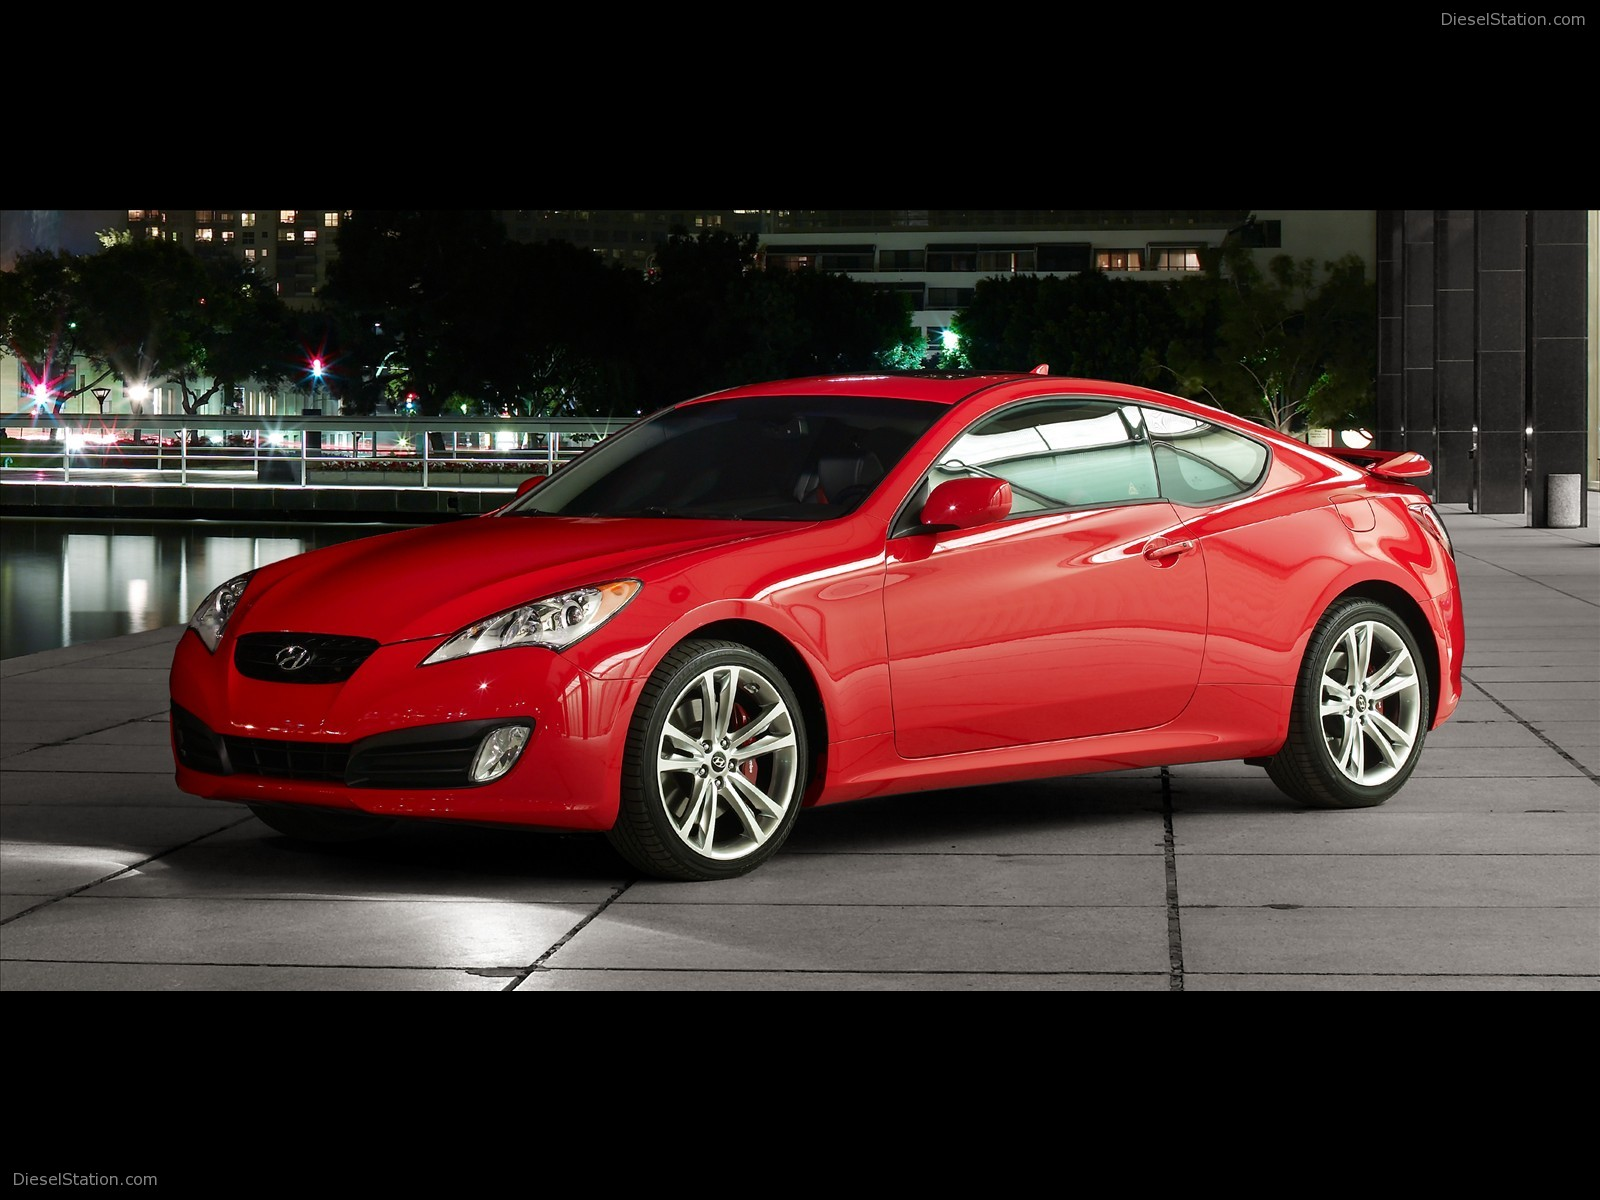 hyundai genesis coupe 2009 pictures